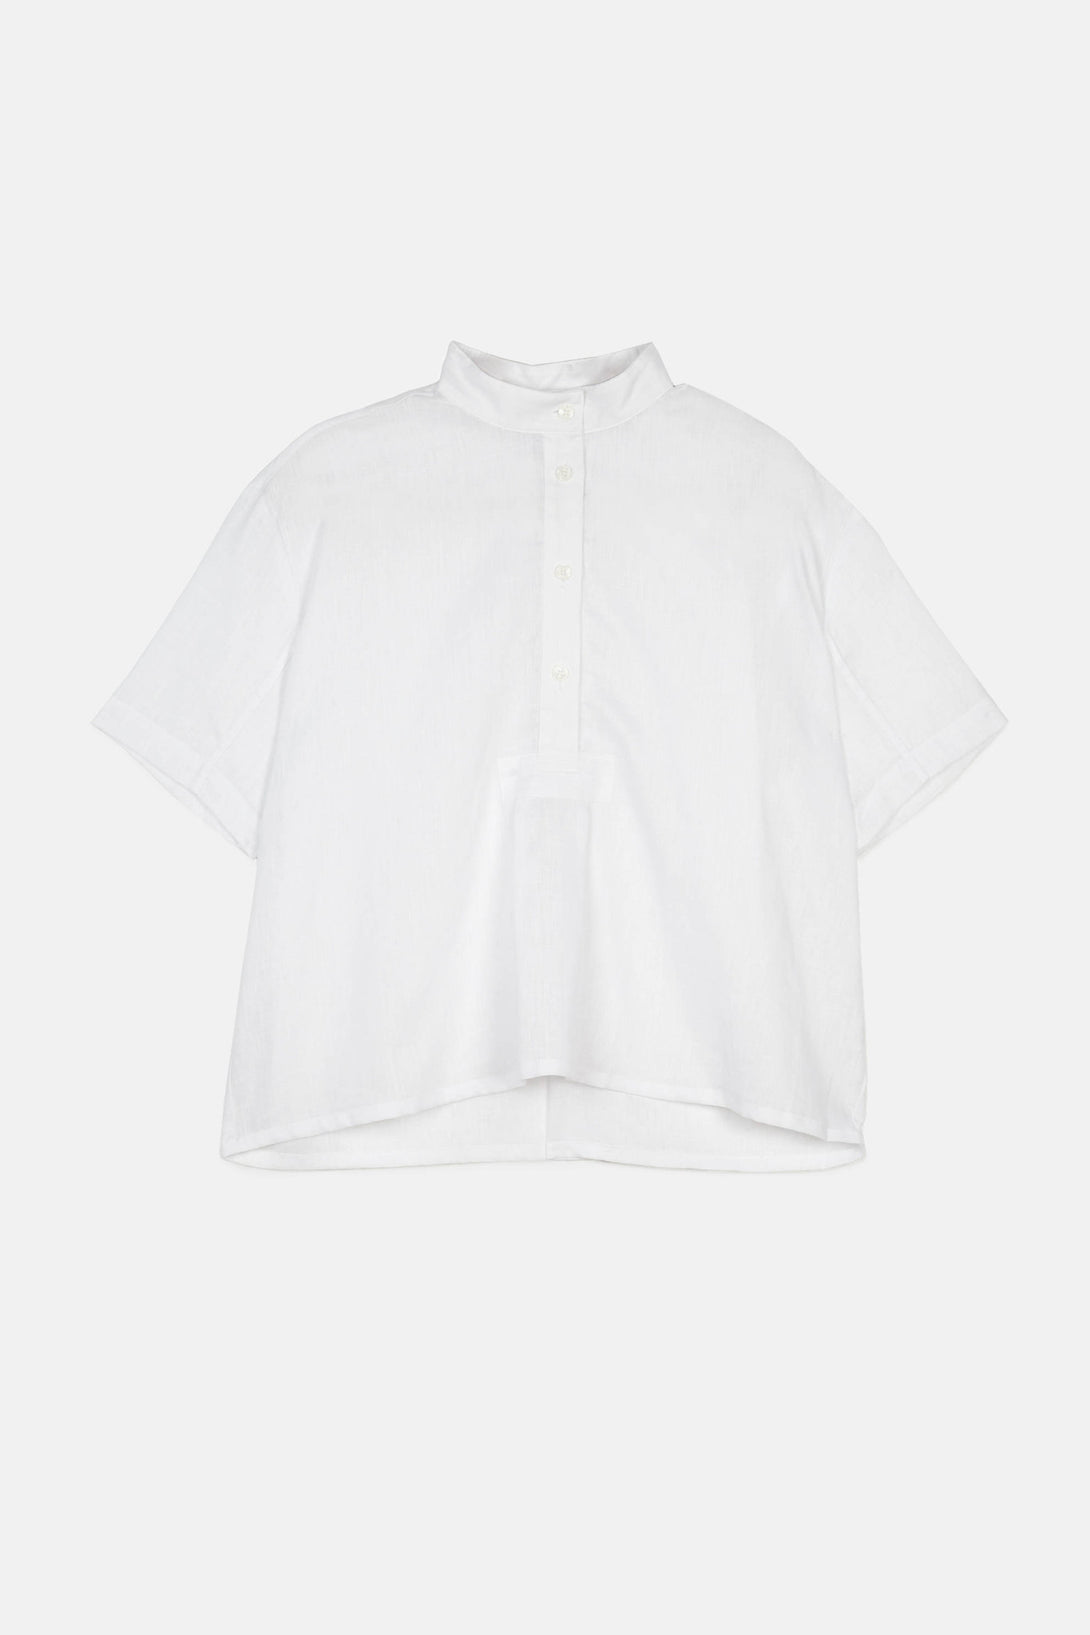 Short Sleeve Cropped Sleep Shirt - White